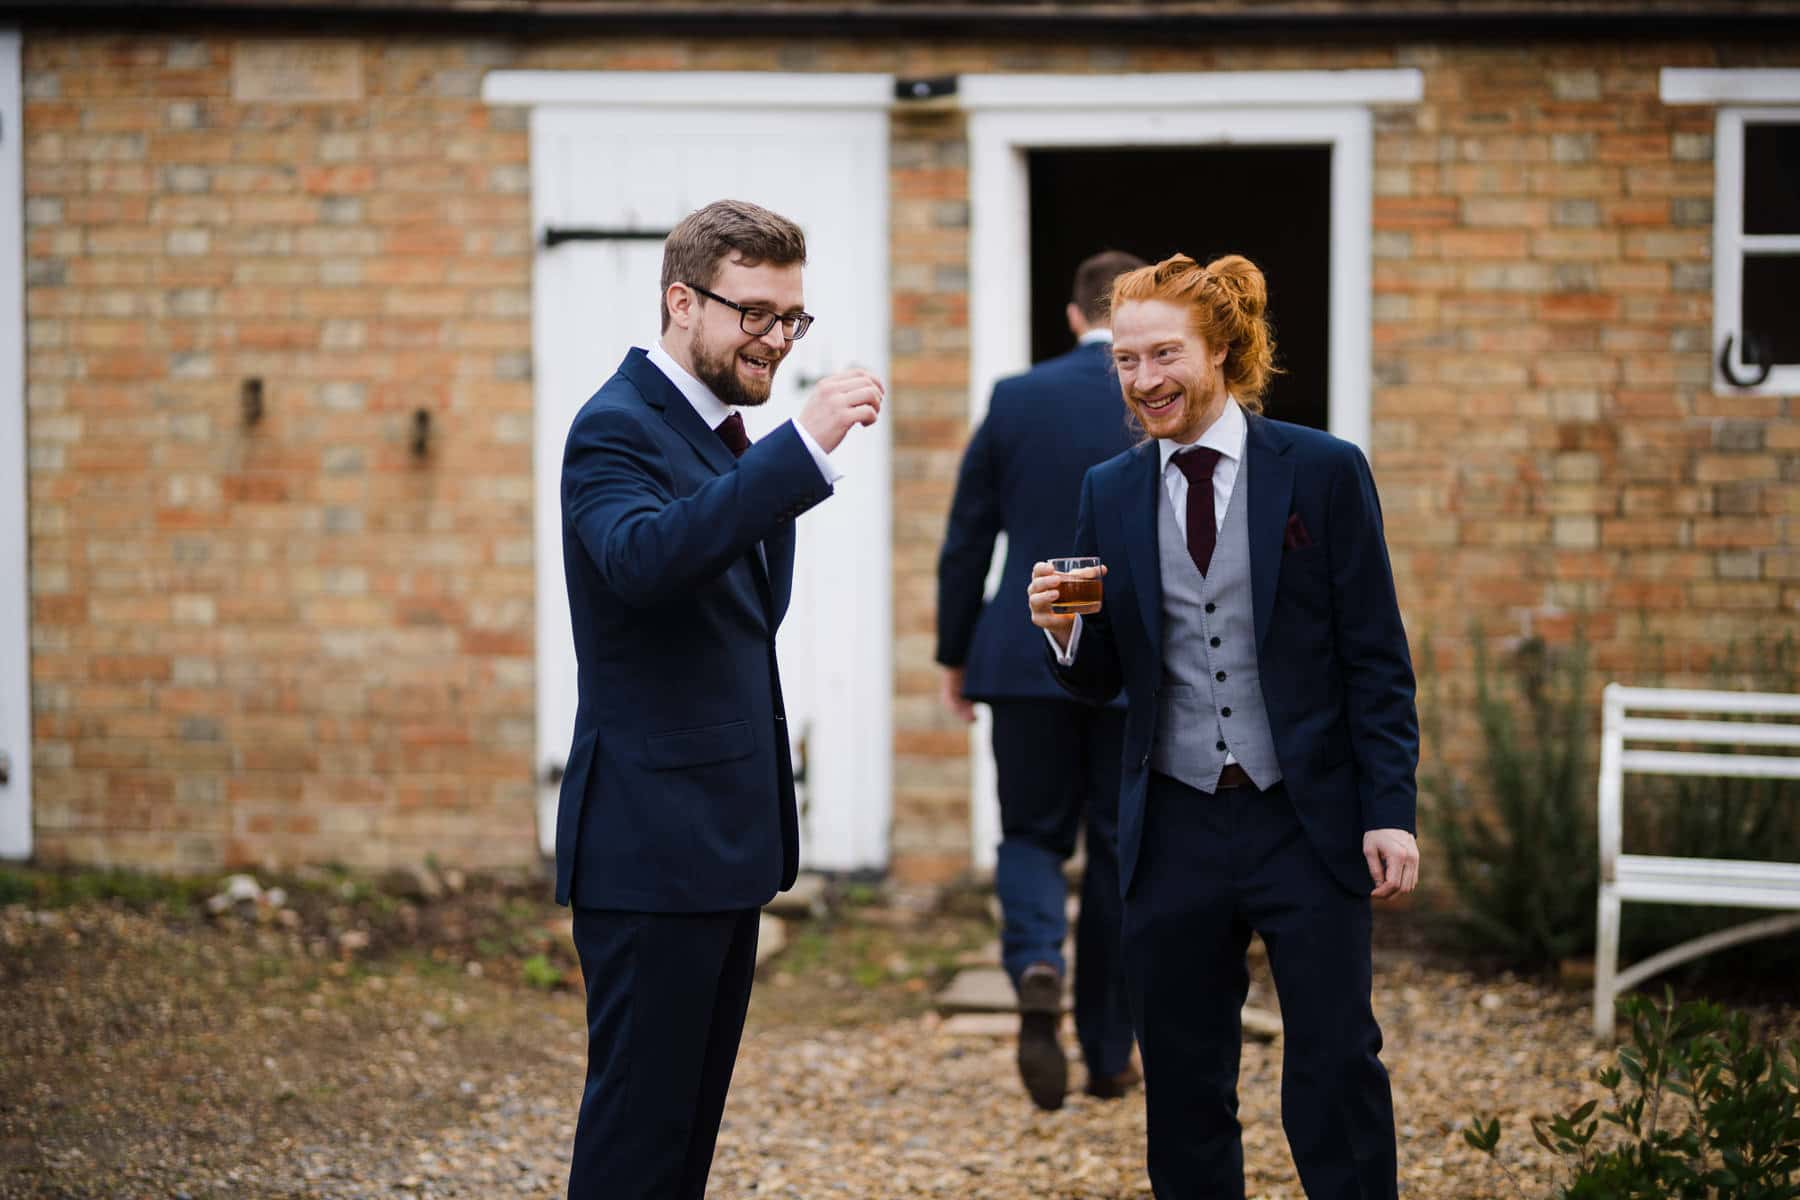 Groom and groomsmen sharing a laugh and wiskey